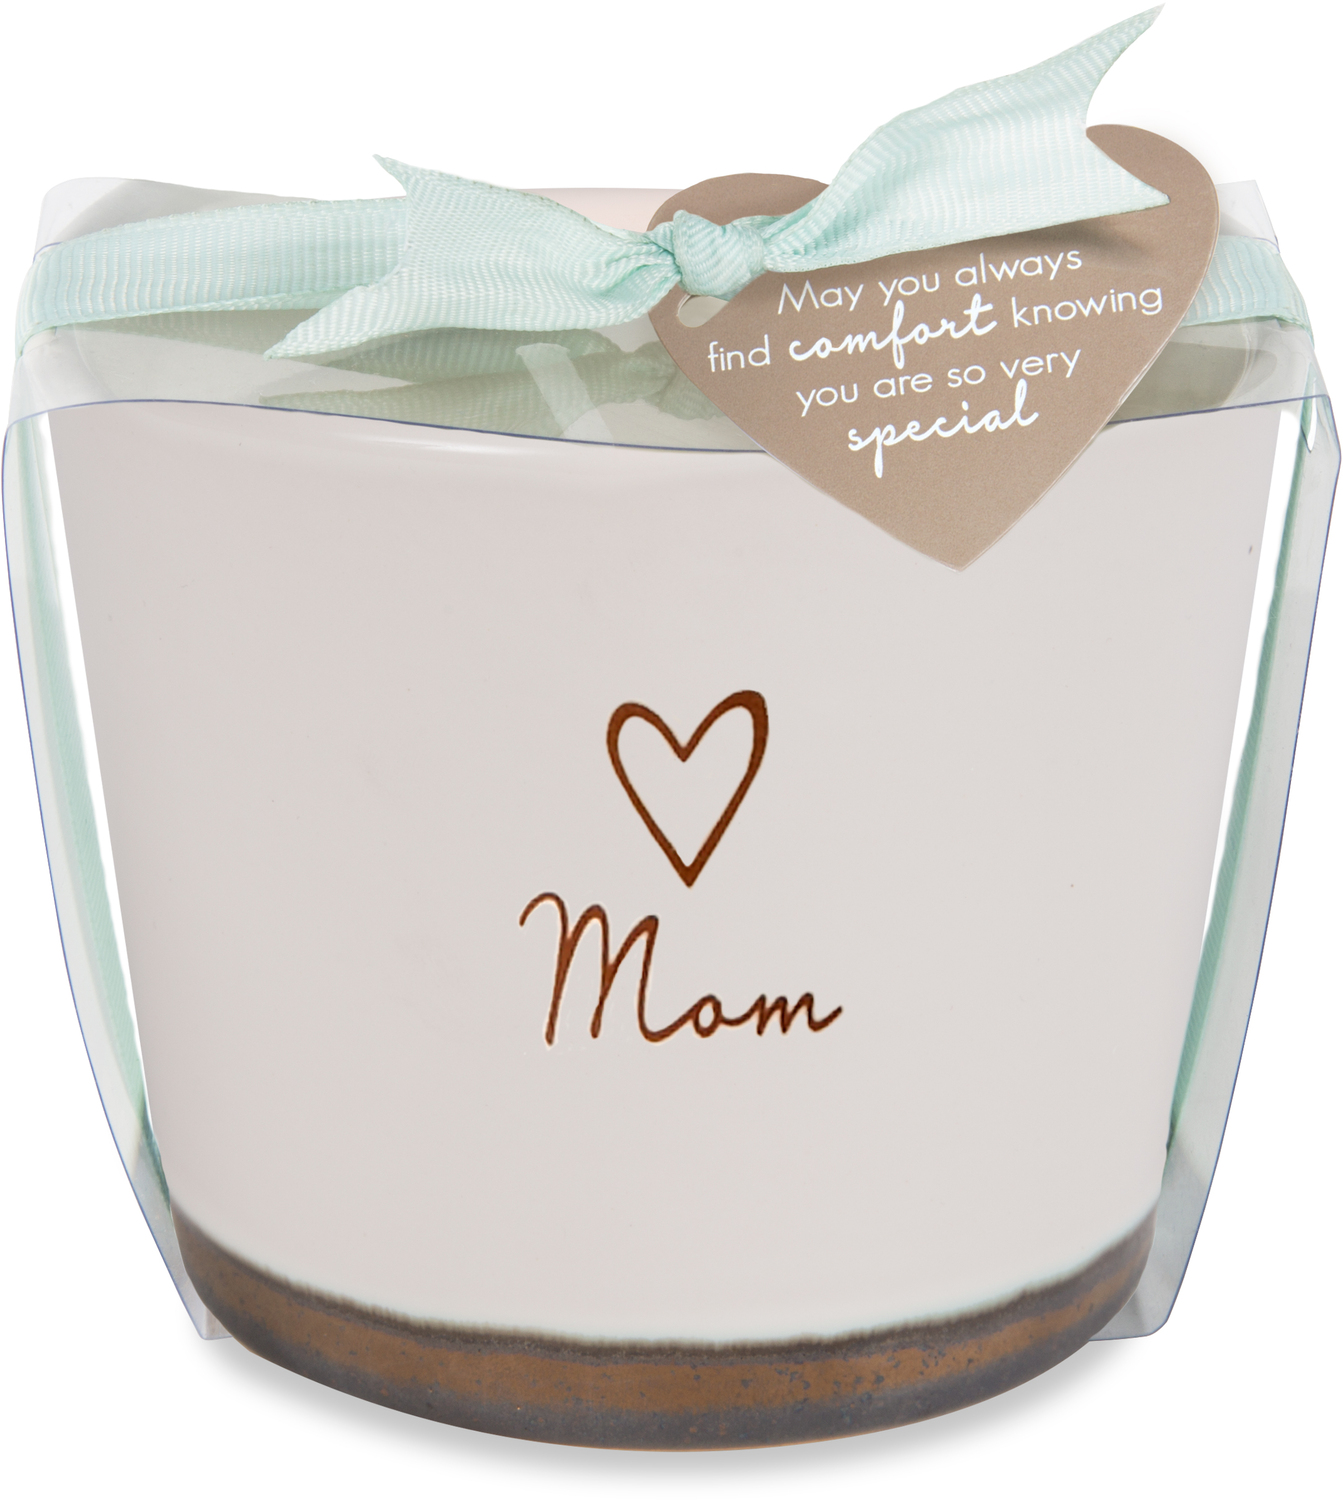 Mom by Comfort Collection - Mom - 8 oz - 100% Soy Wax Candle Scent: Tranquility